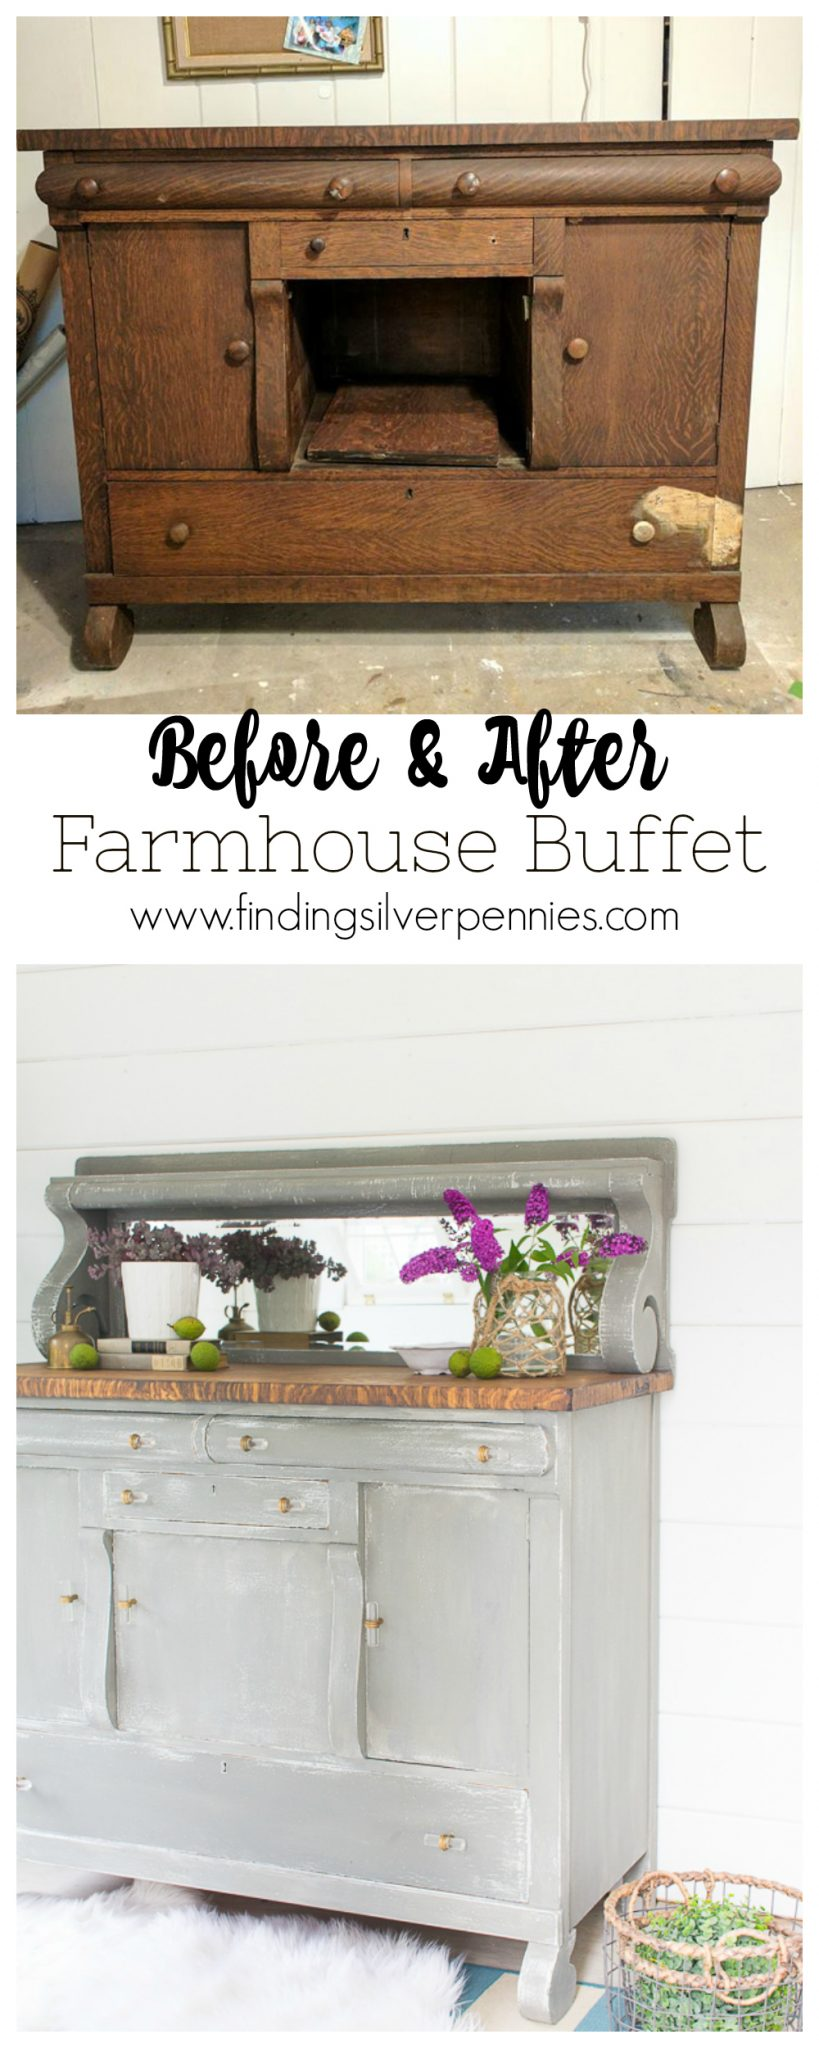 Farmhouse Buffet - Favorite DIYs - Finding Silver Pennies